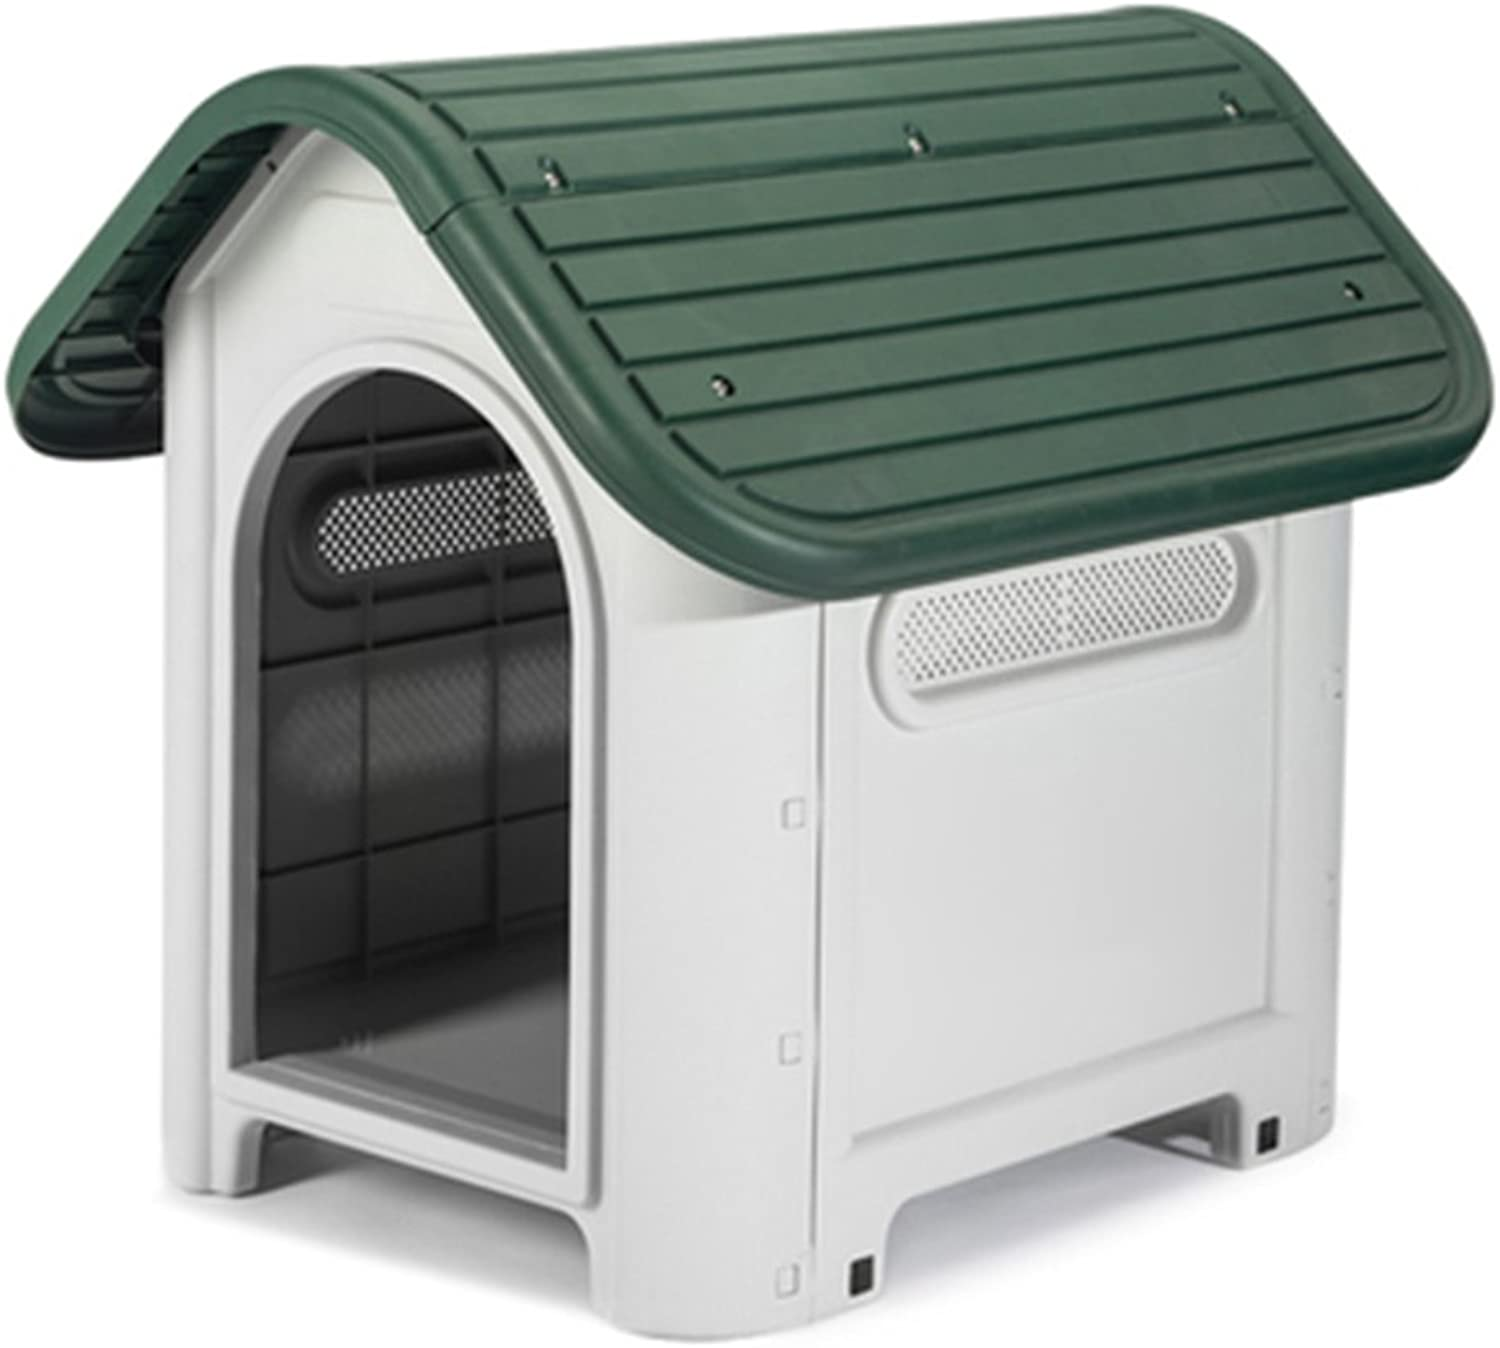 MIAOLIDP Pet dog house Teddy dog bed small dog kennel indoor plastic outdoor washable dog cat litter dog pad Pet supplies (color   Green)